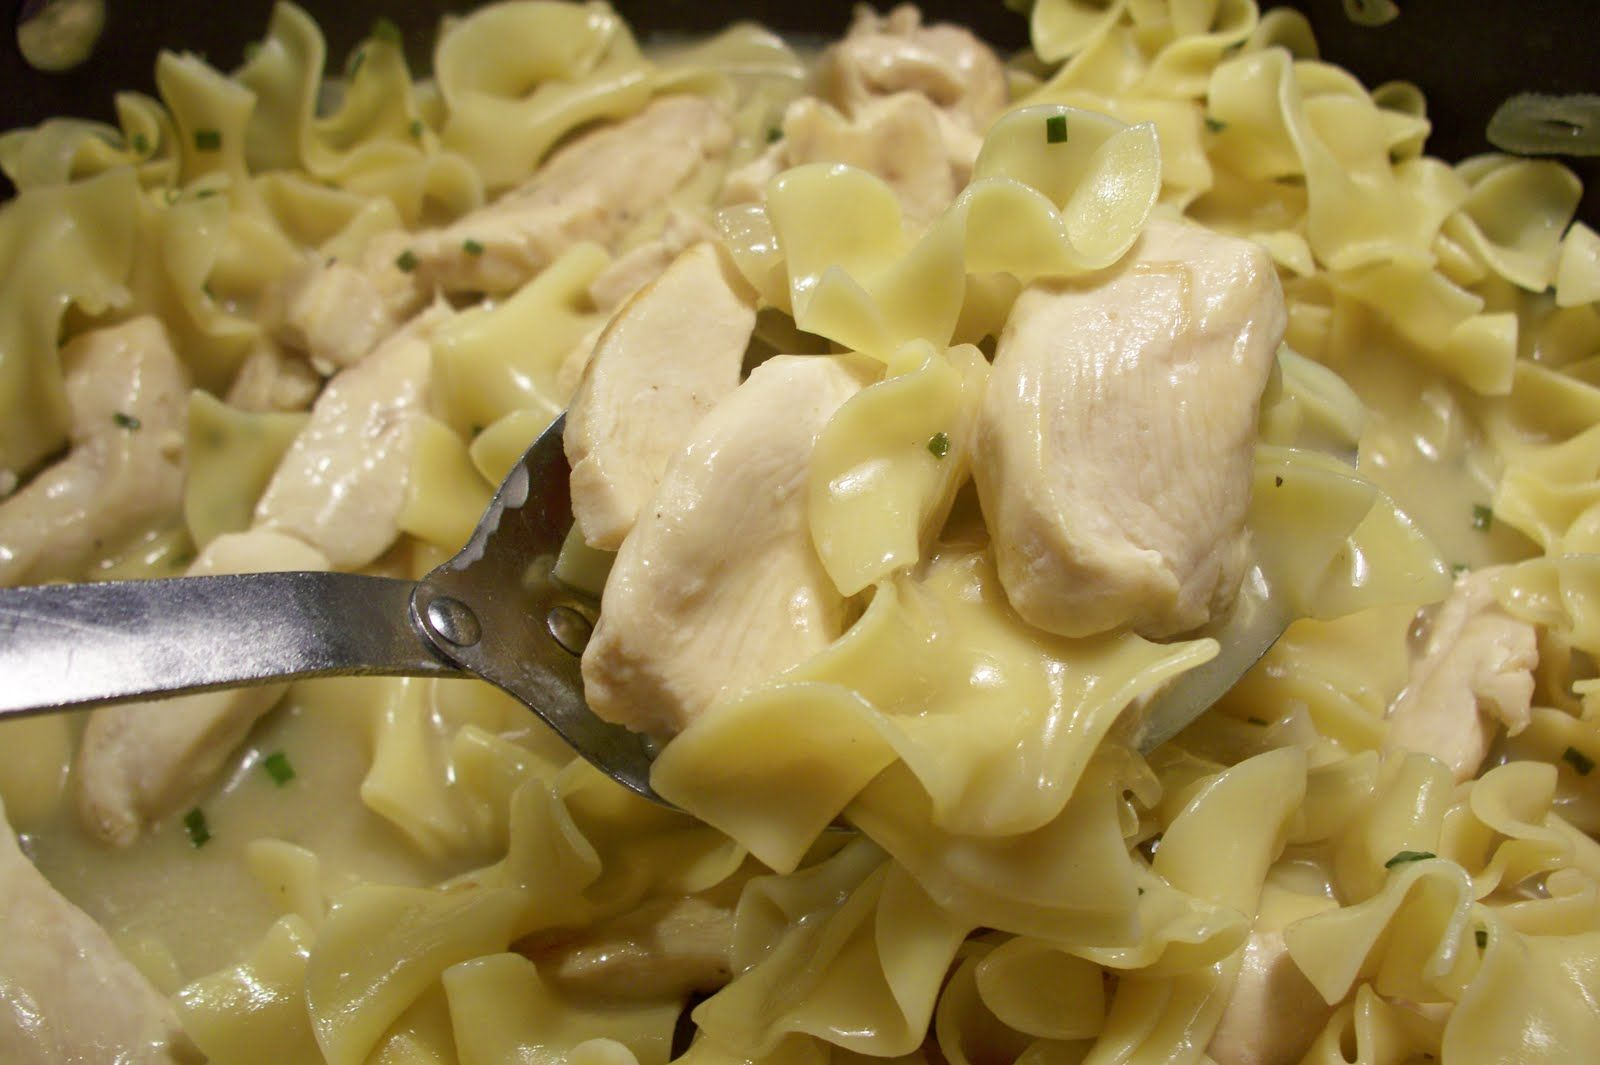 Chicken And Egg Noodle Dumplings Food So Good Mall Recipe Chicken And Egg Noodles Egg Noodle Recipes Recipes Using Egg